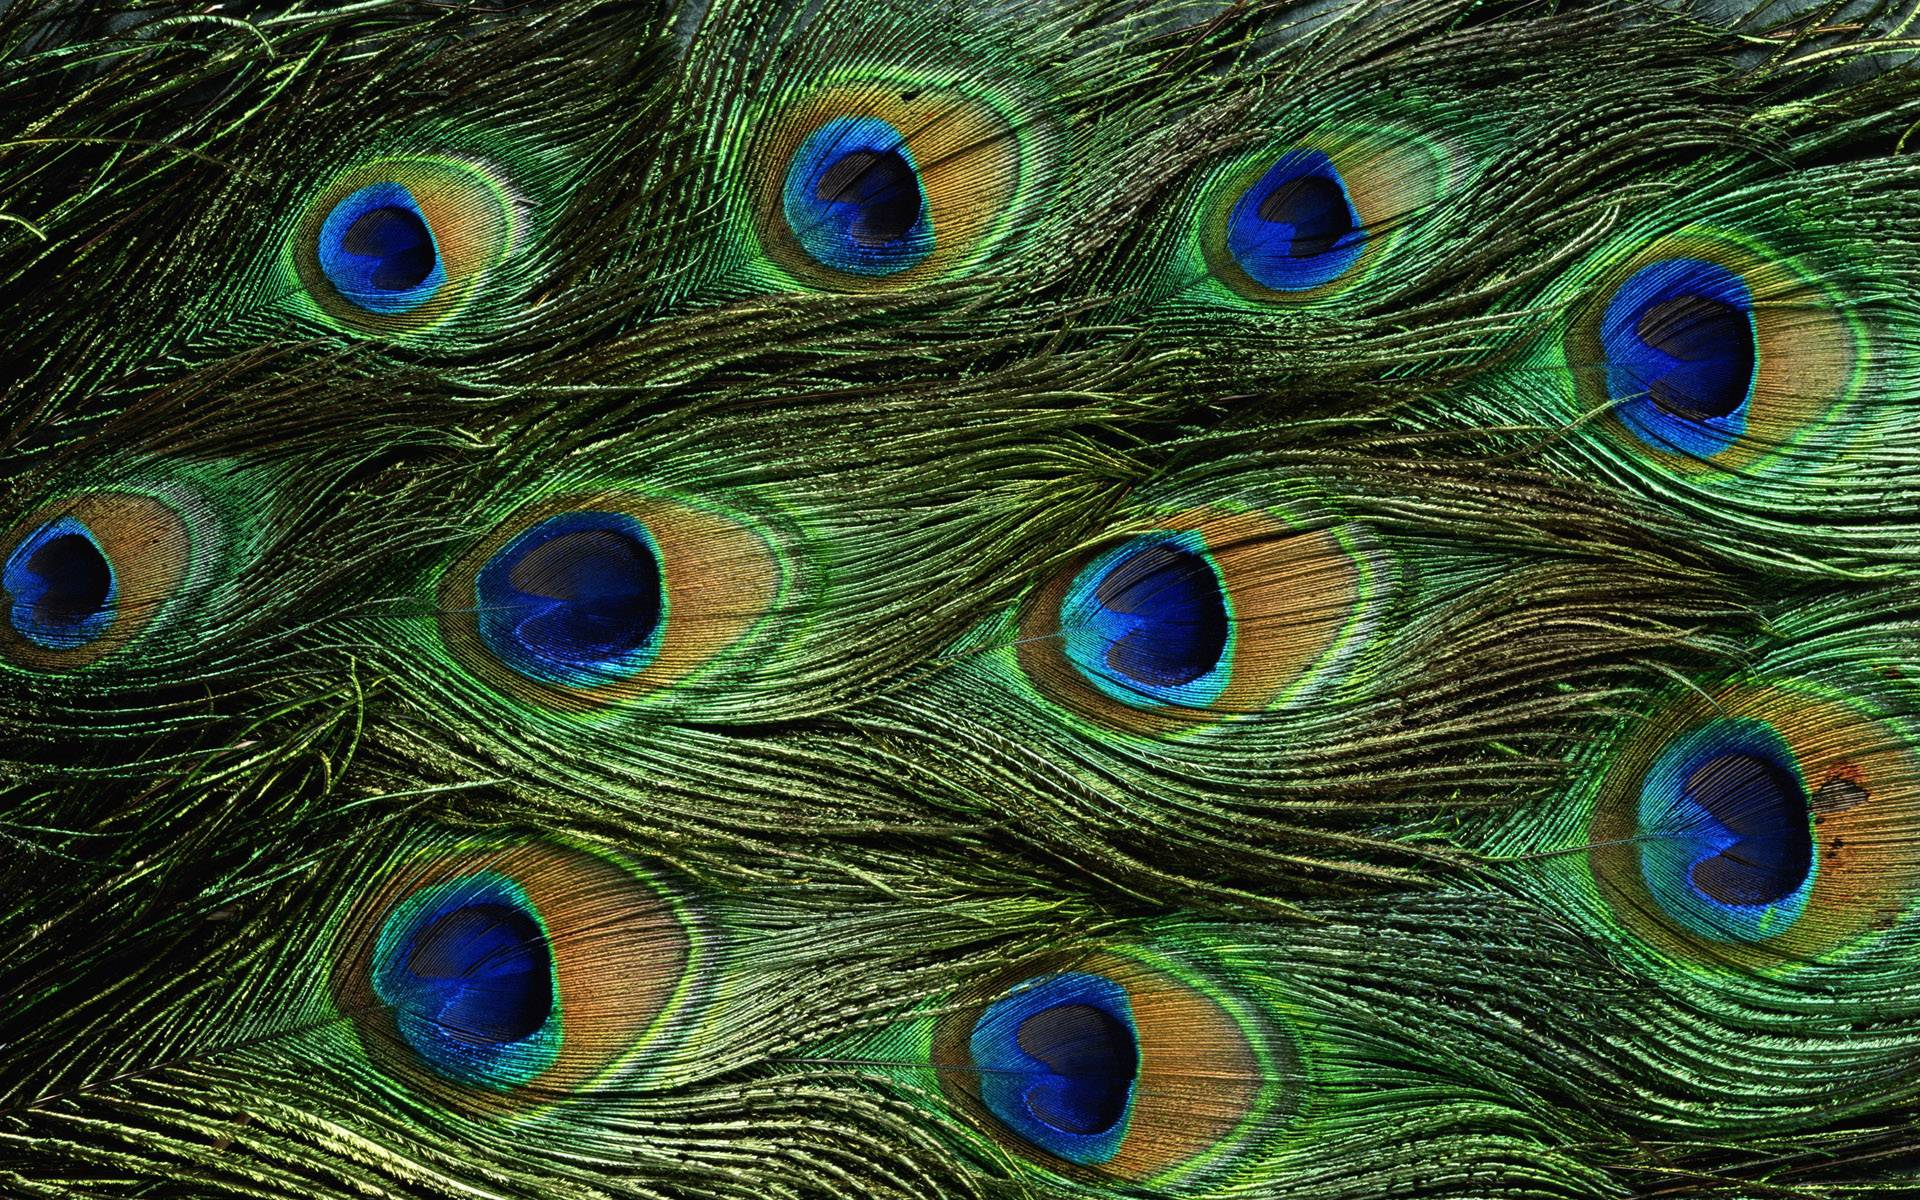 Wallpapers Of Peacock Feathers HD 2015 1920x1200